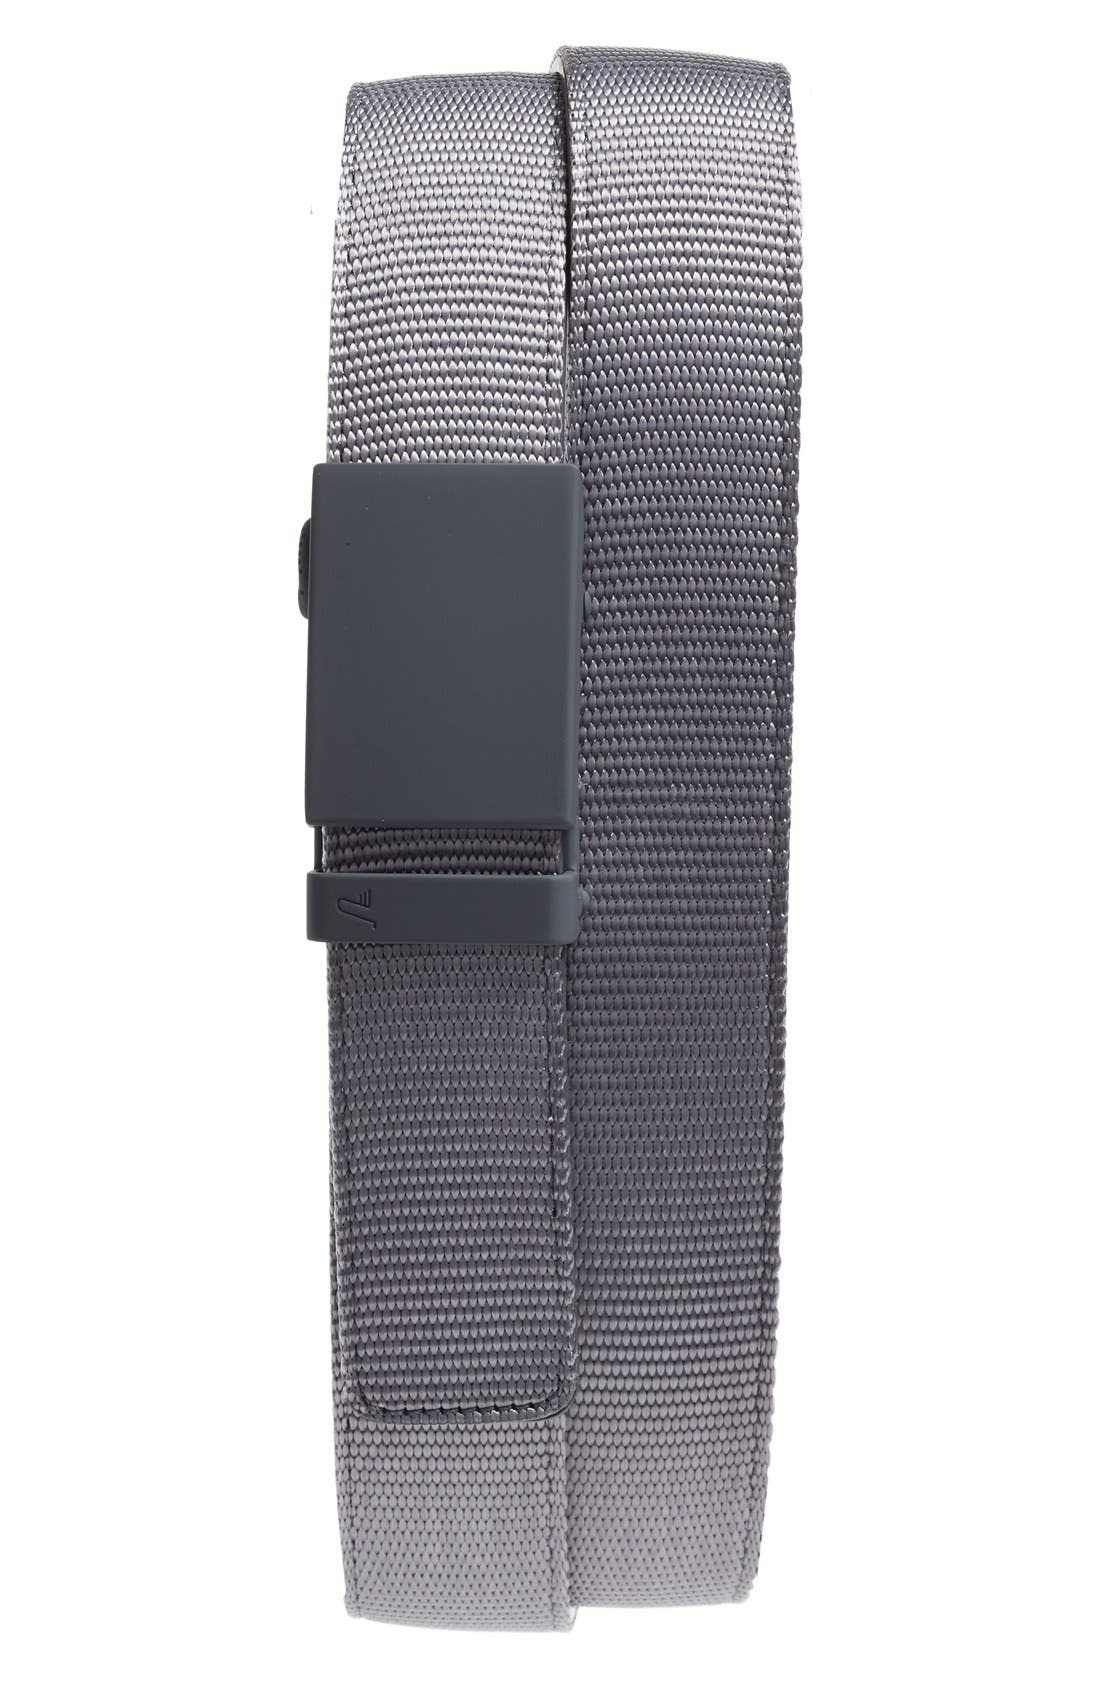 Mission Belt Nylon Belt